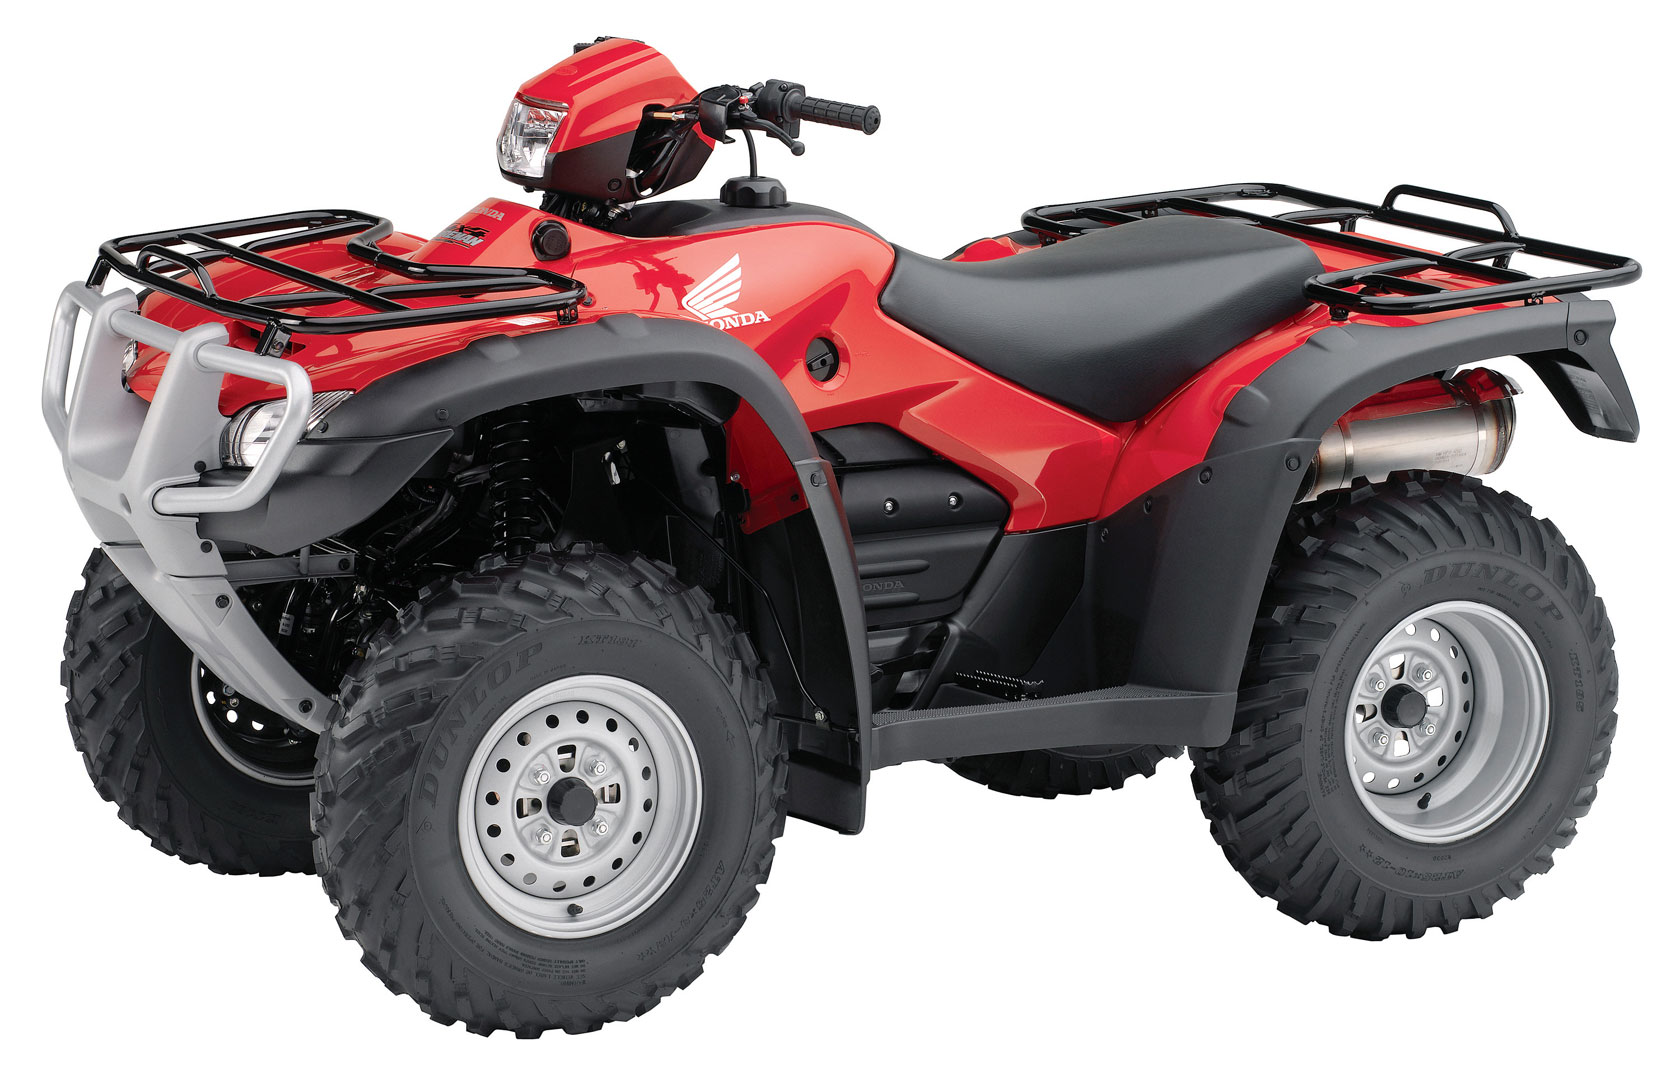 2009 honda fourtrax foreman 4x4 with power steering trx500fpm. Black Bedroom Furniture Sets. Home Design Ideas